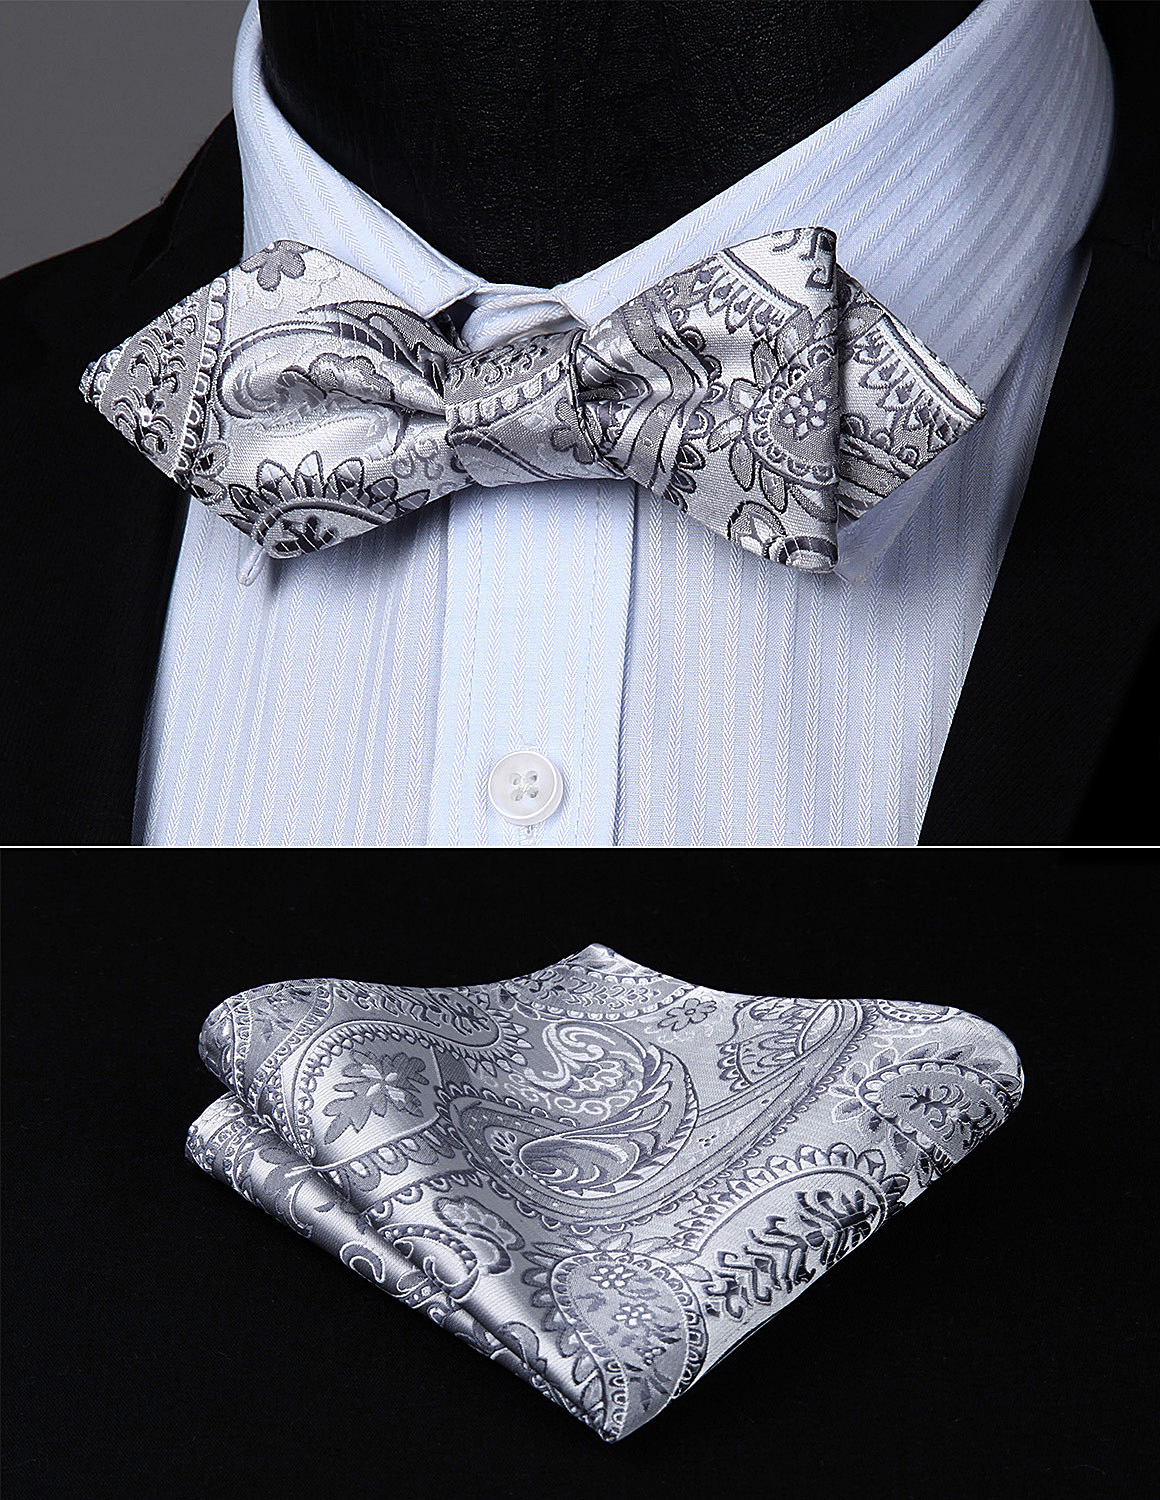 Men Self Bow Tie Paisley Striped Check Diamond Point Tip Handkerchief Set#JT2 Pocket Square Classic Party Wedding